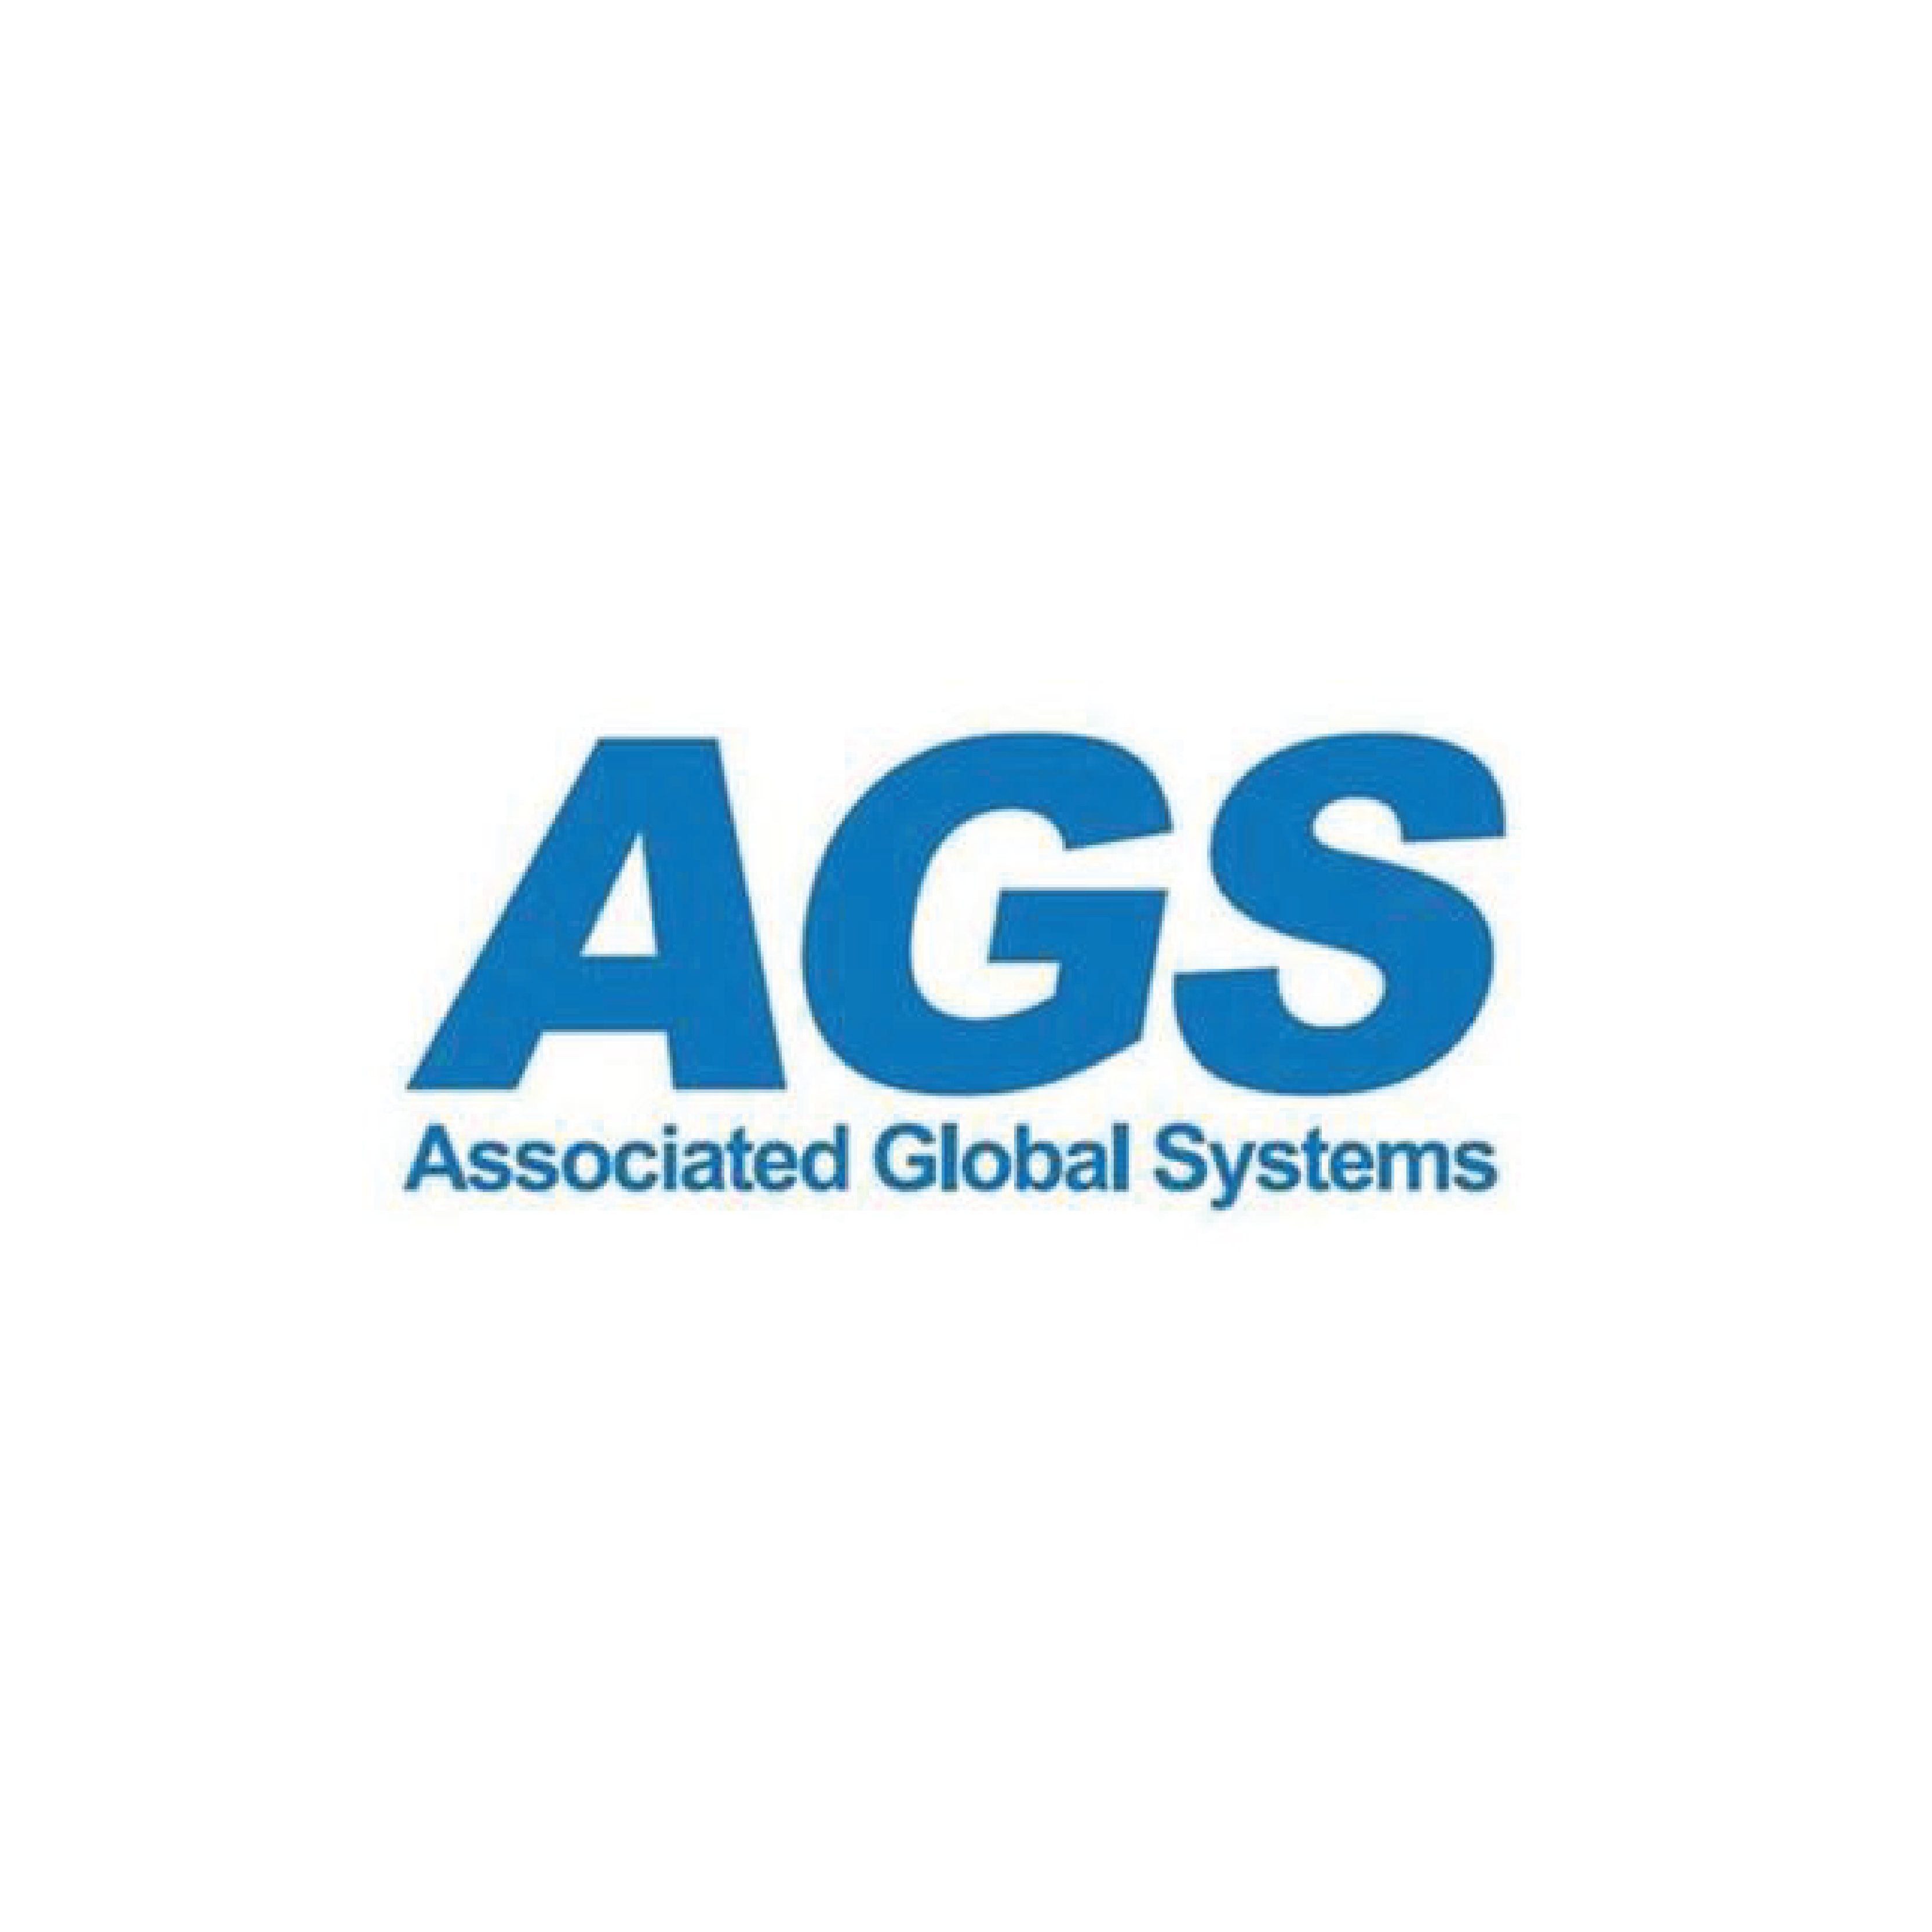 AGS Associate Global Systems Shipedge Integration